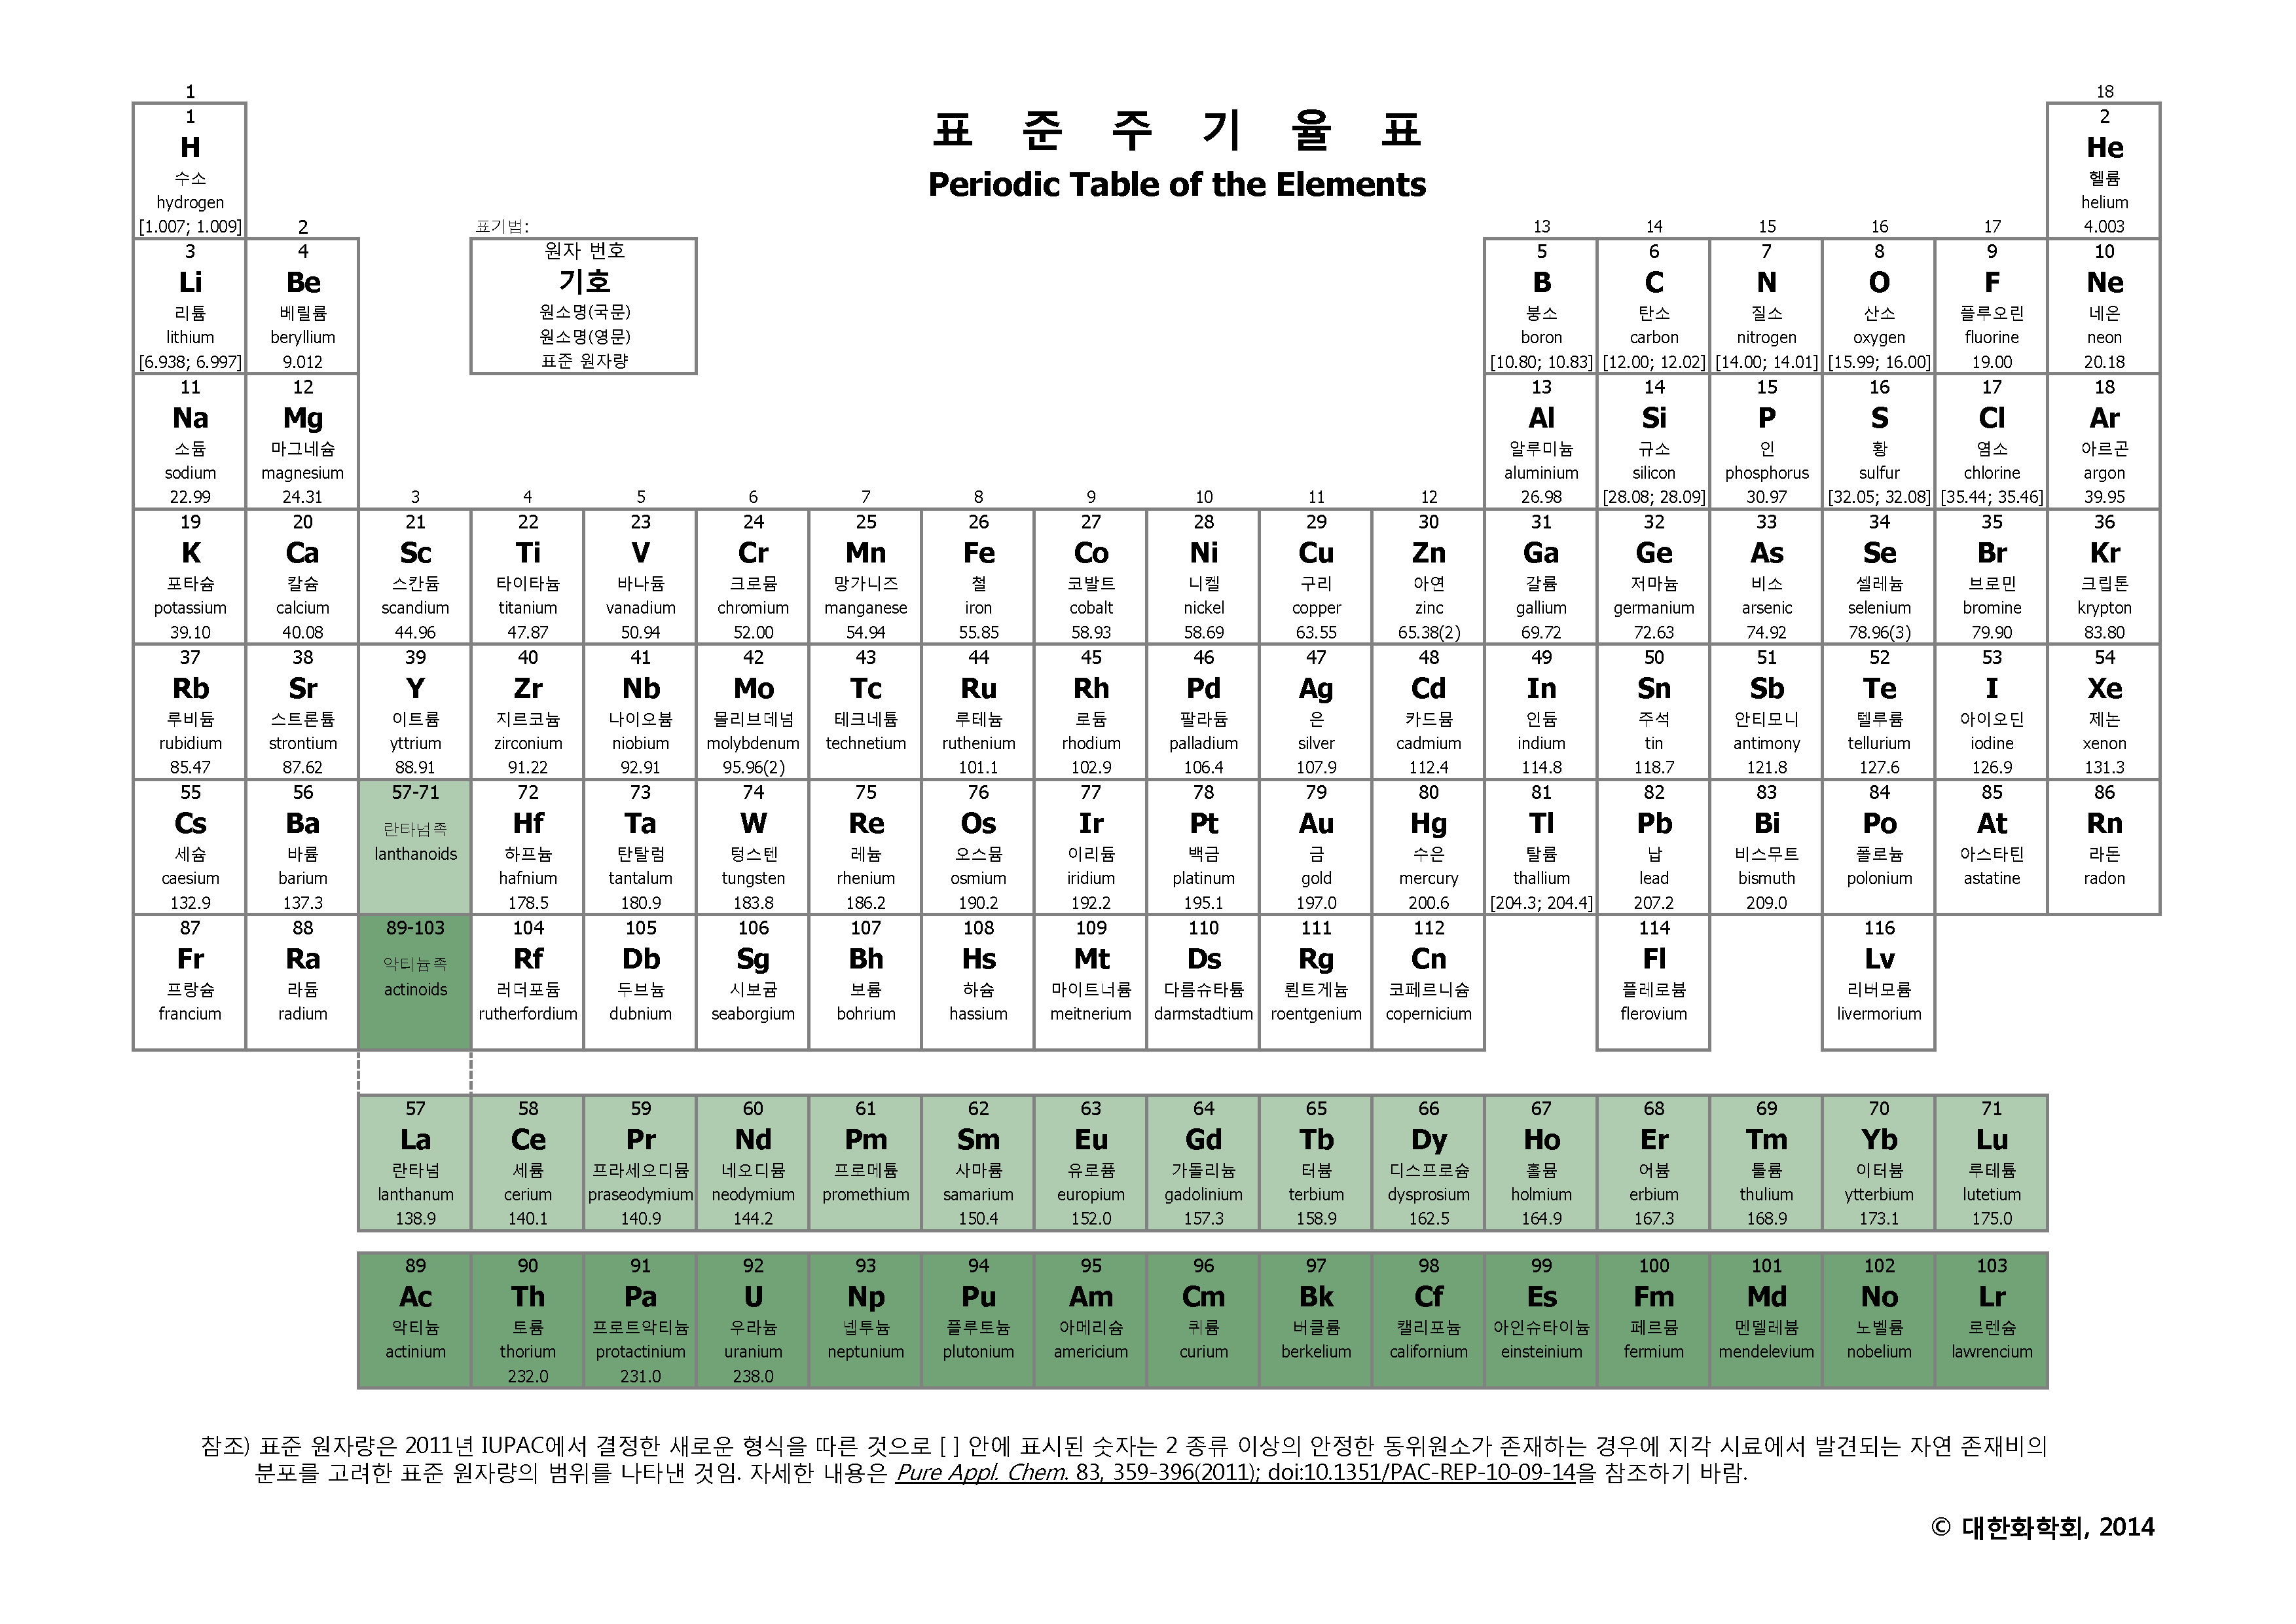 Elementary Particles additionally Icp likewise Px Periodic Table Simple Et Bw Svg besides Pt in addition Maxresdefault. on periodic table